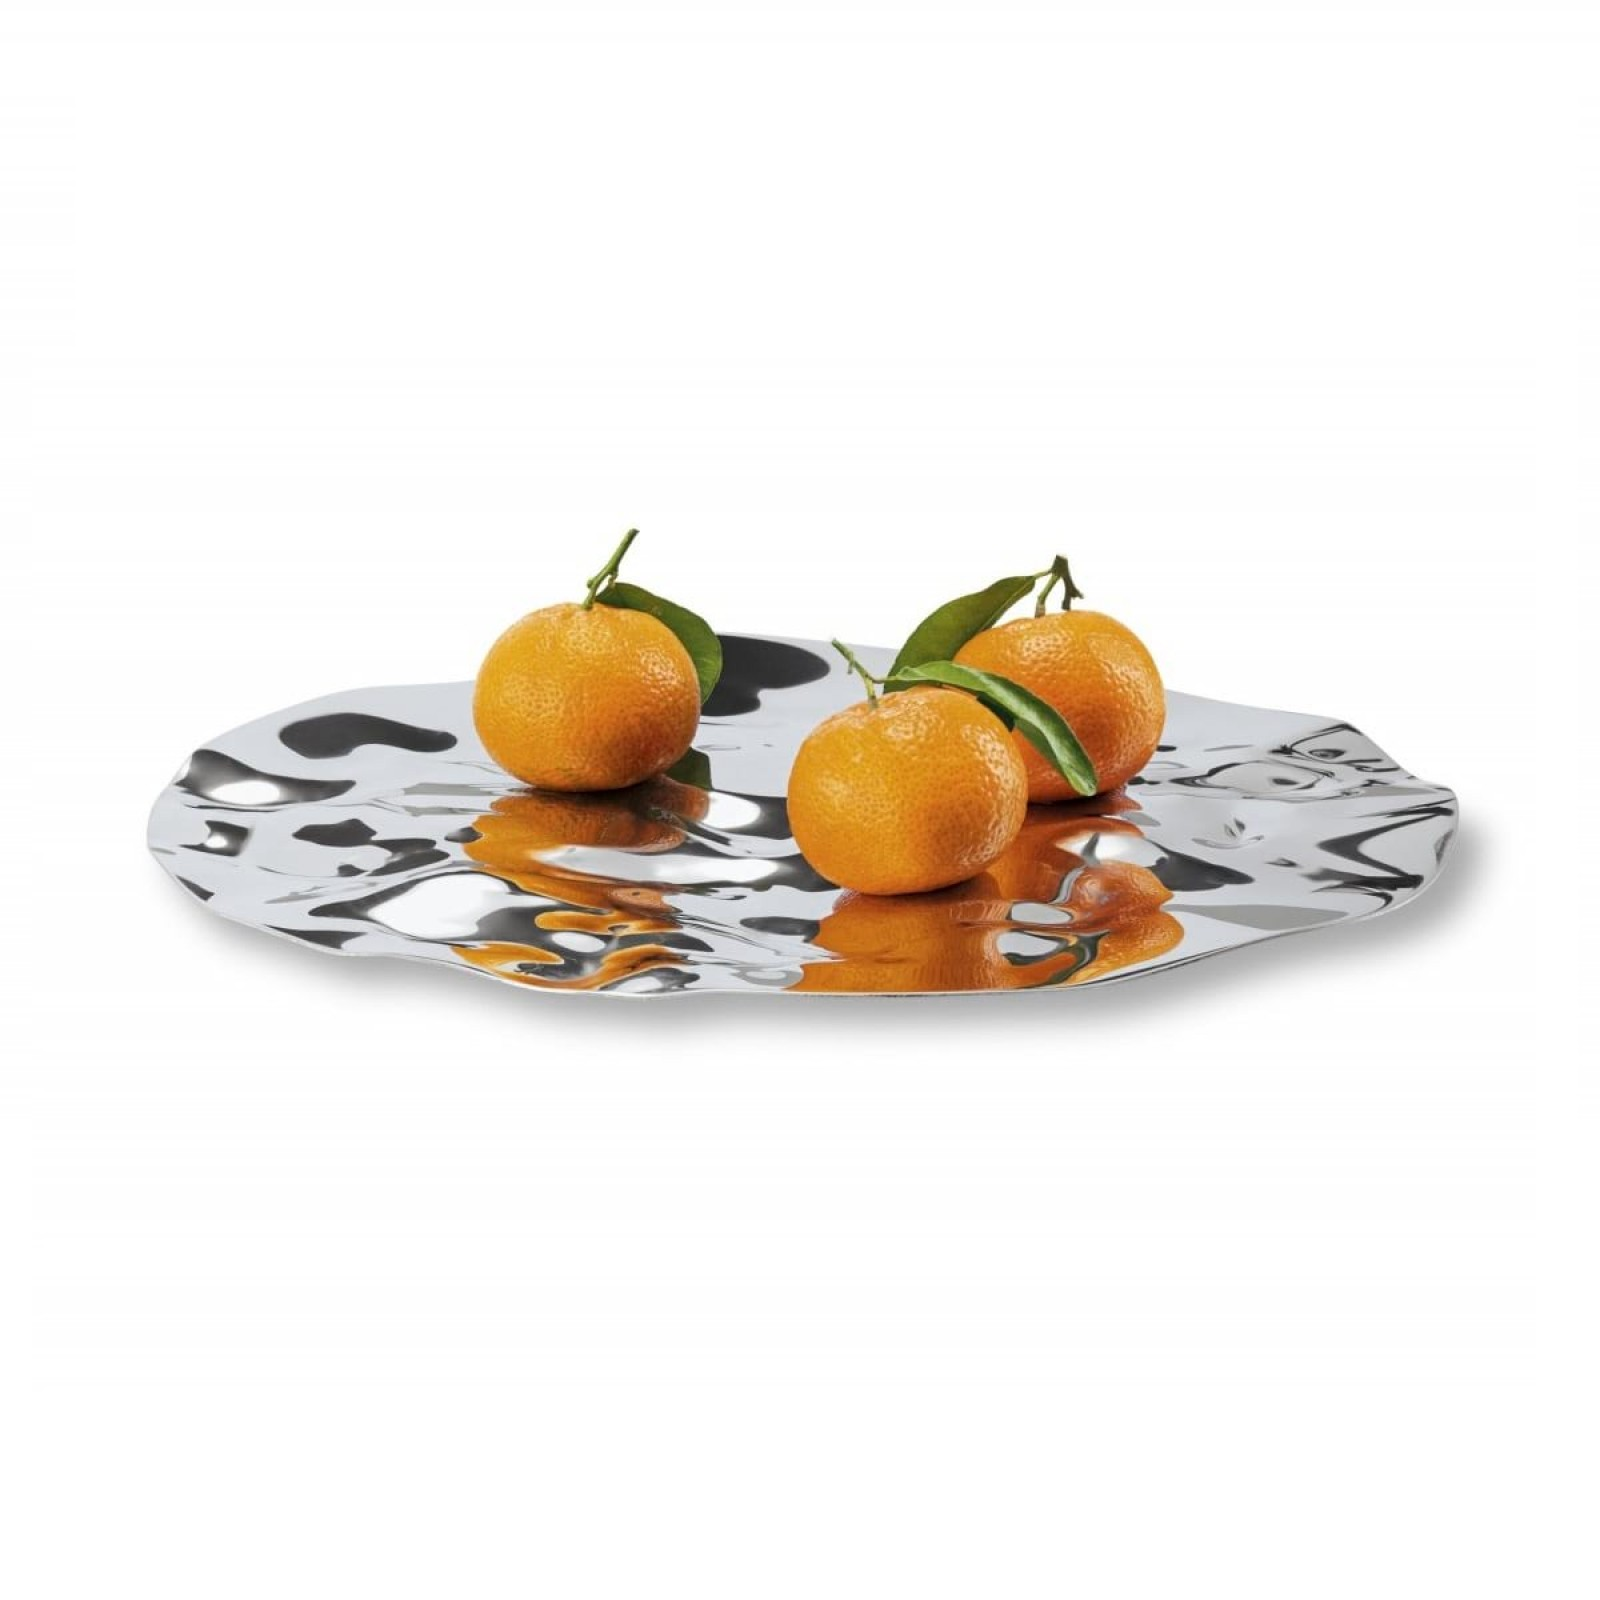 WATER Fruit Bowl (Stainless Steel) - Philippi